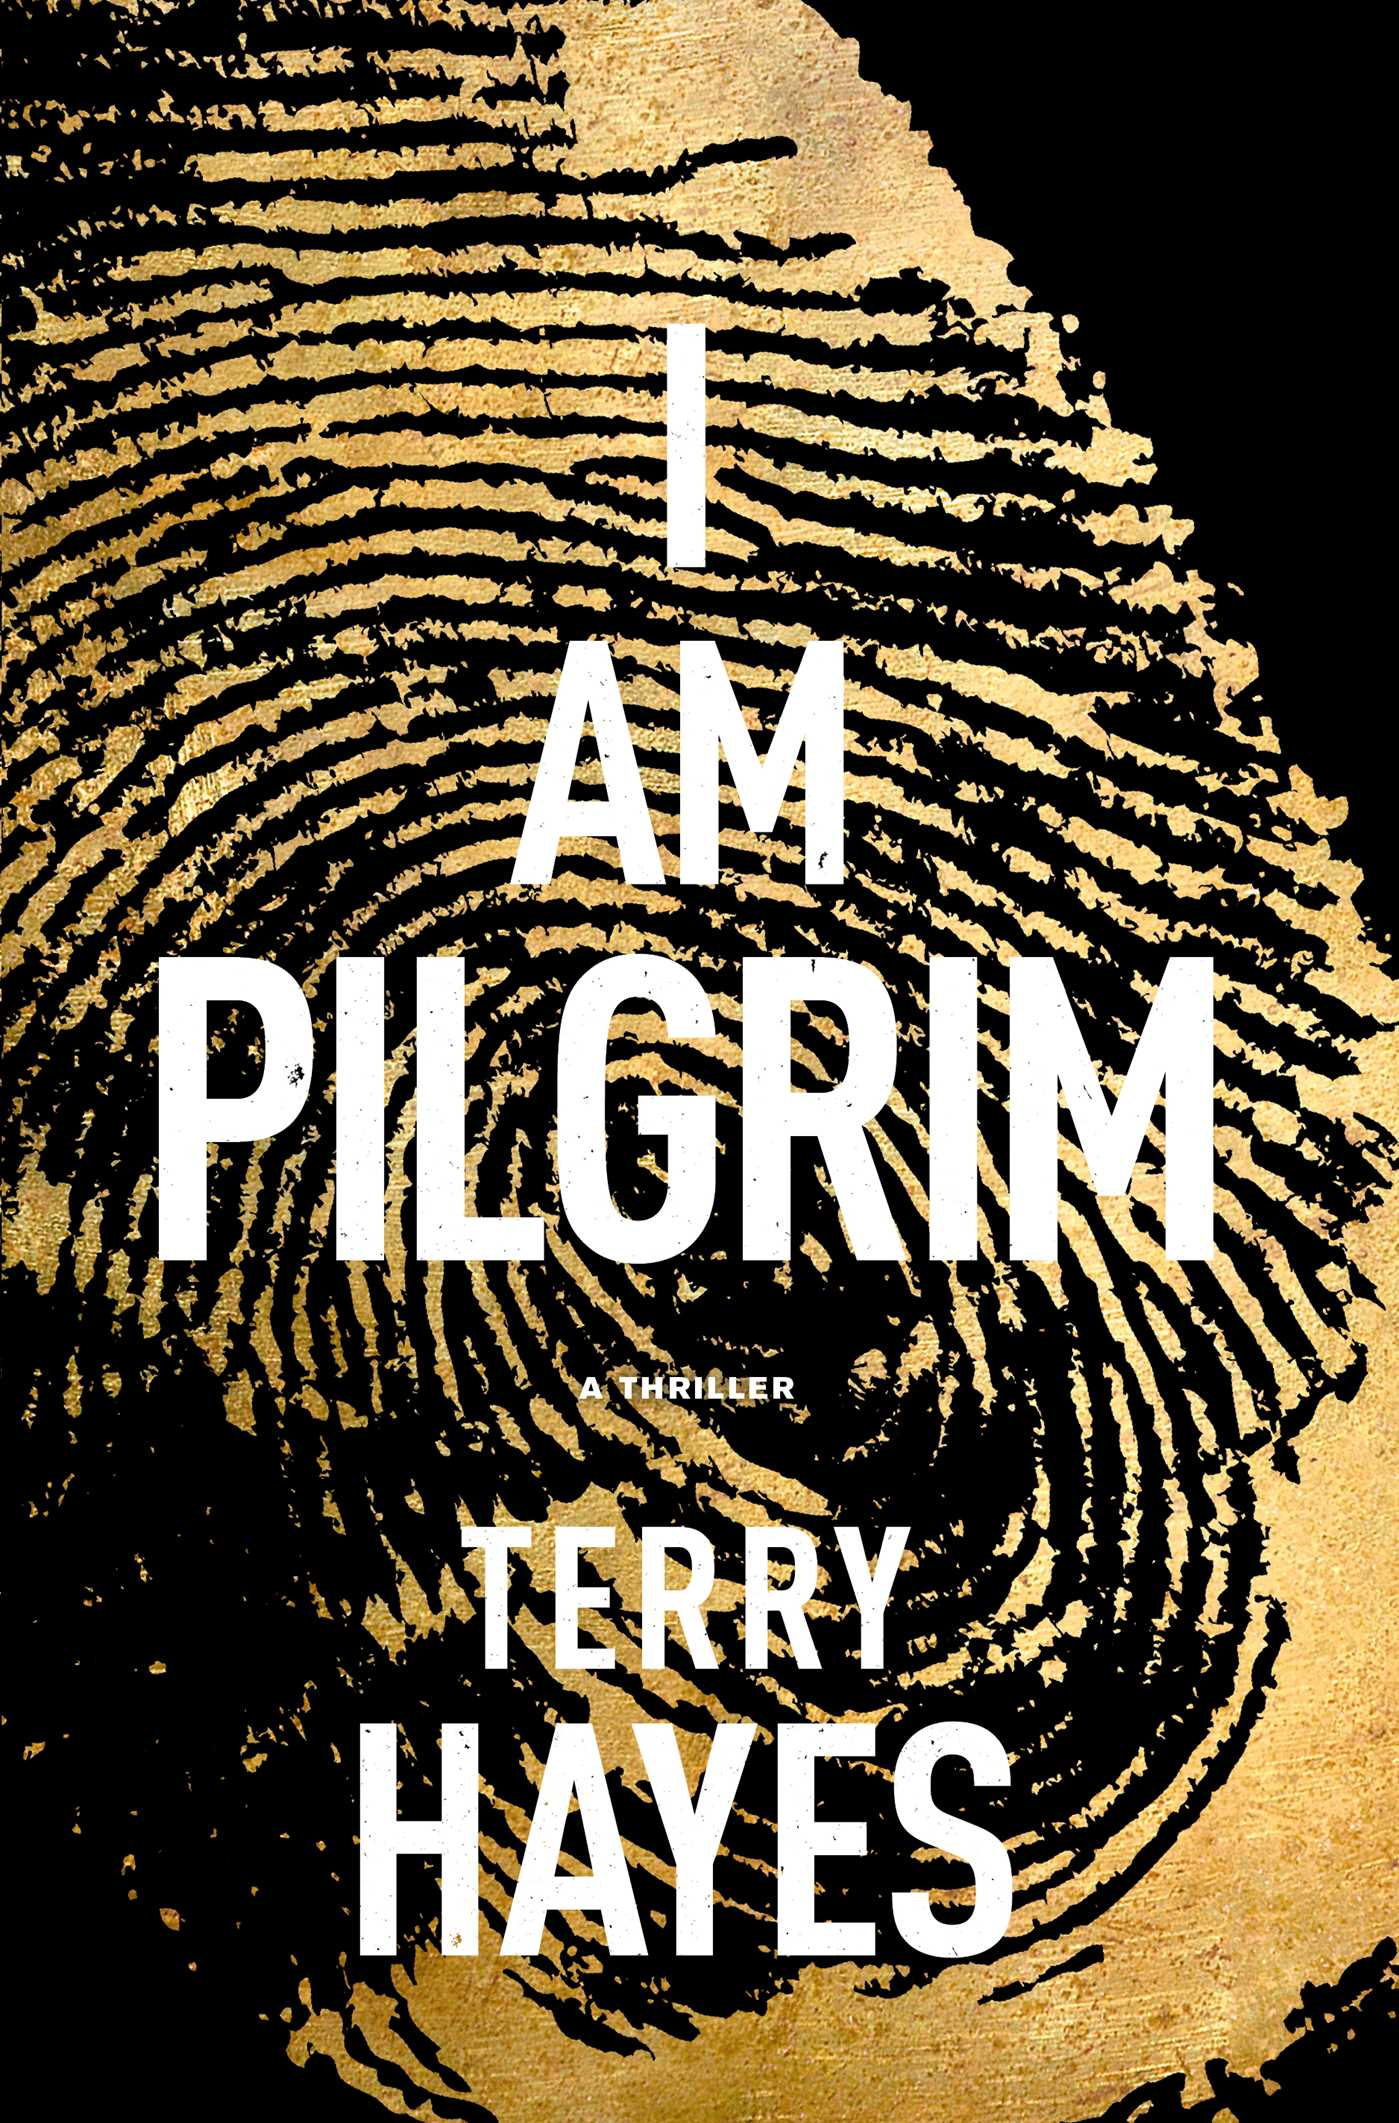 I-am-pilgrim-9781439177723_hr